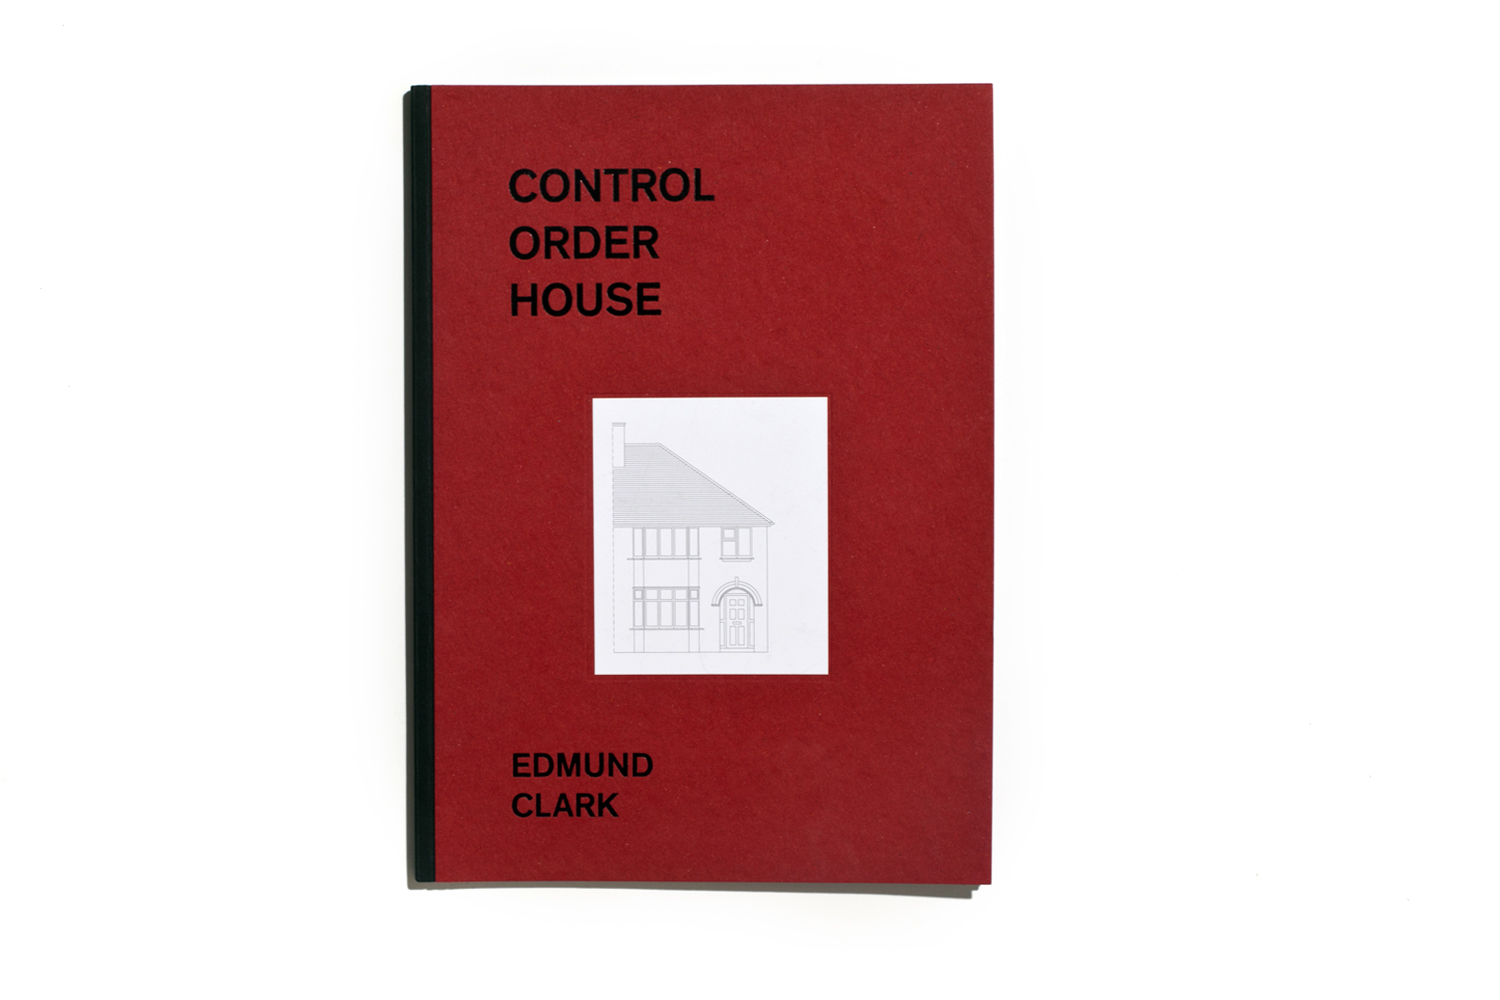 Control Order House by Edmund Clark, published by Here Press, selected by Aron Mörel, publisher, Mörel Books.